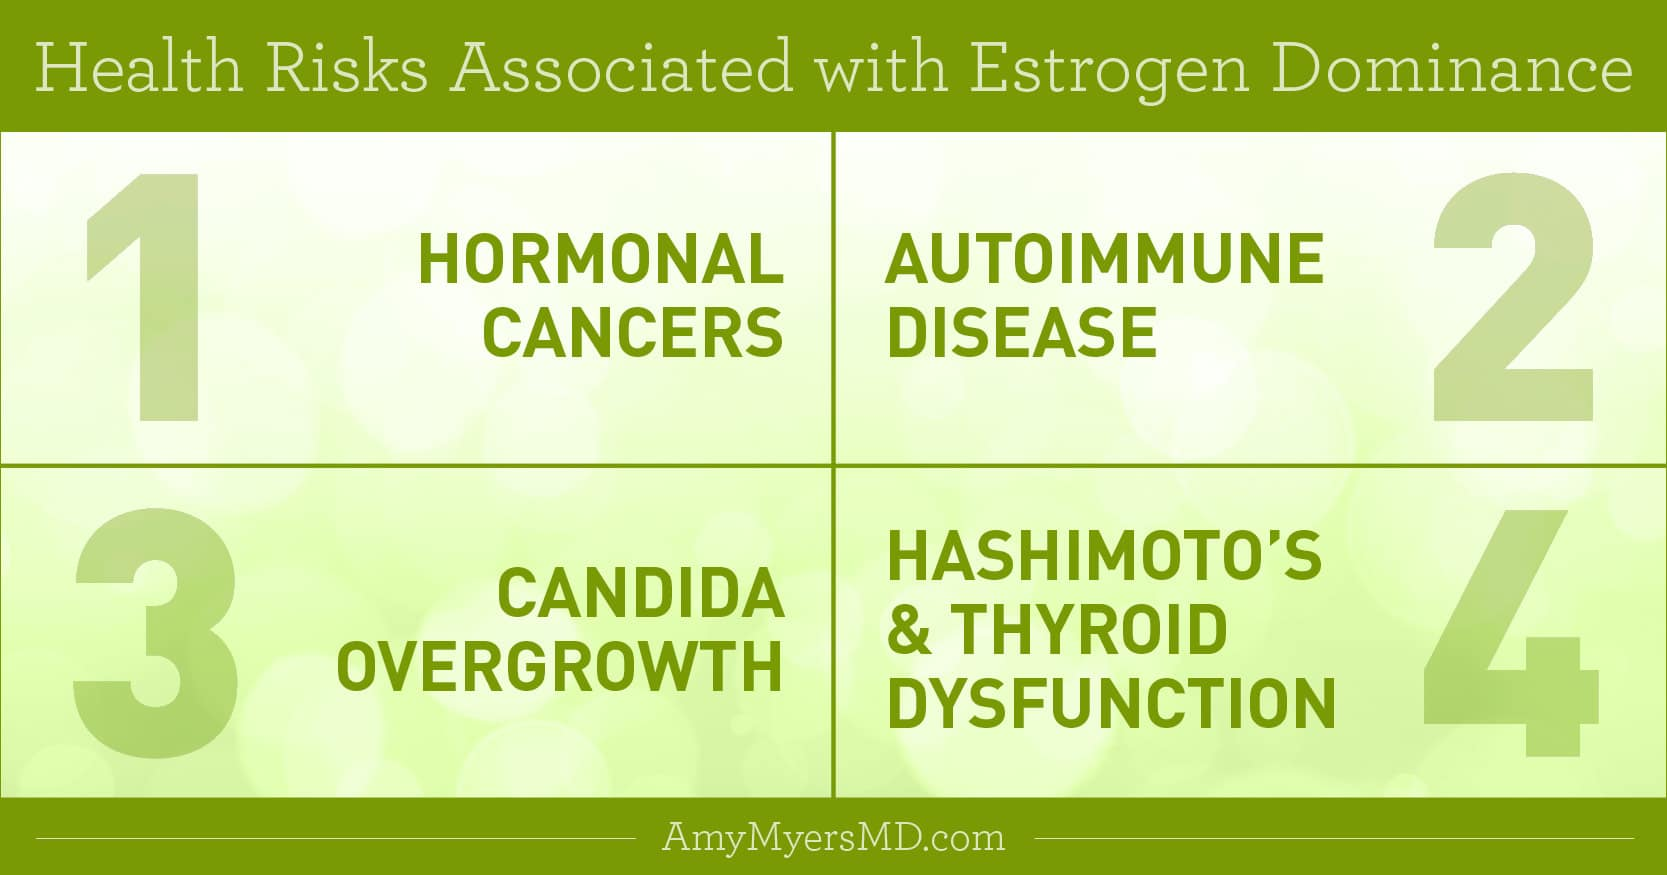 Health Risks Associated with Estrogen Dominance - infographic - Amy Myers MD